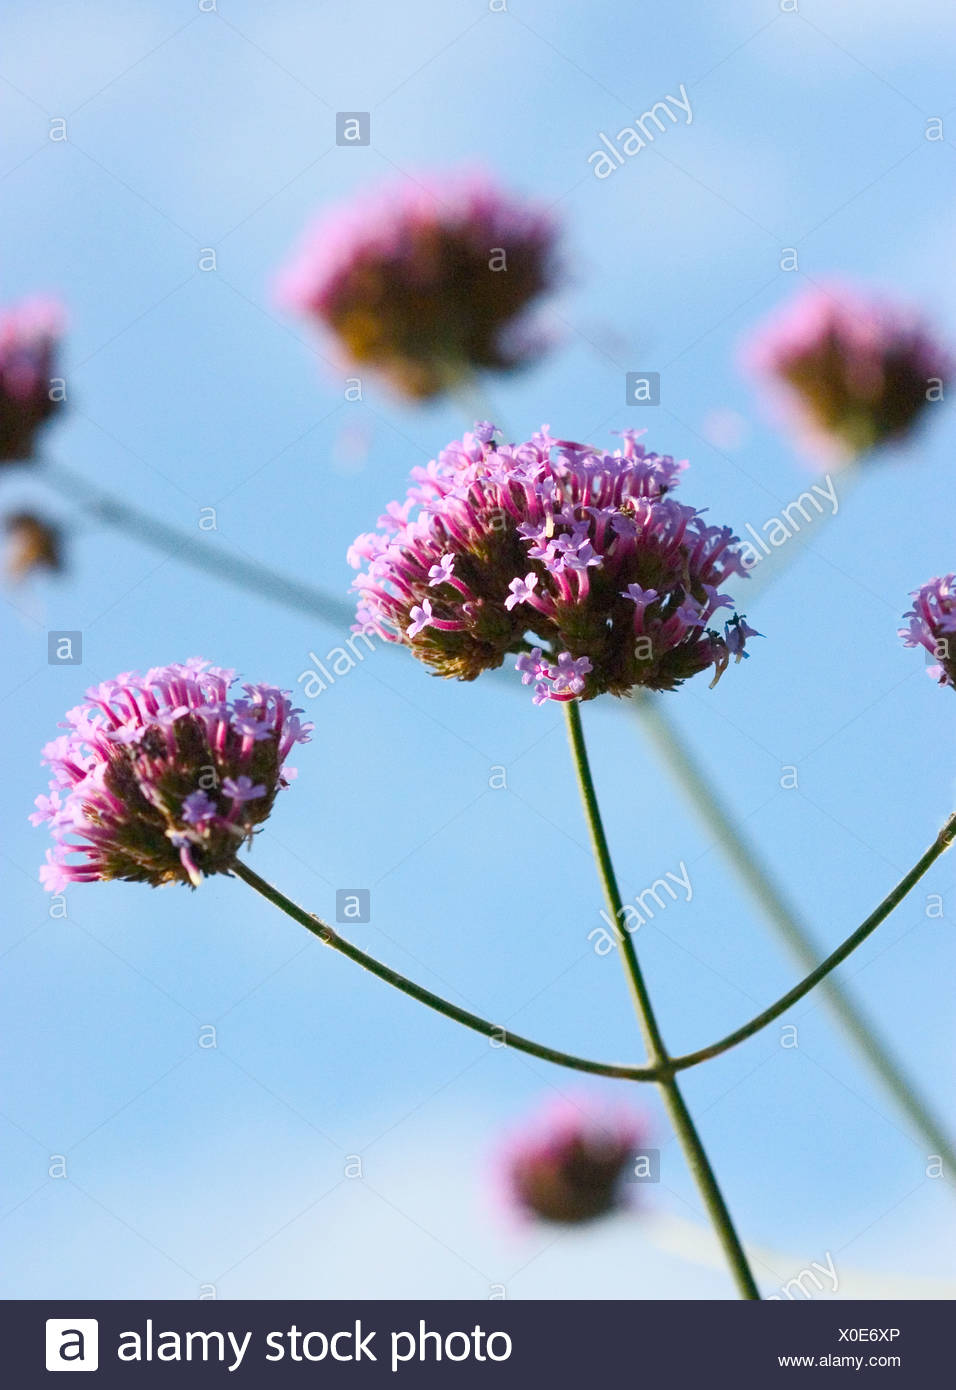 Verbena stems shot against blue sky - Stock Image